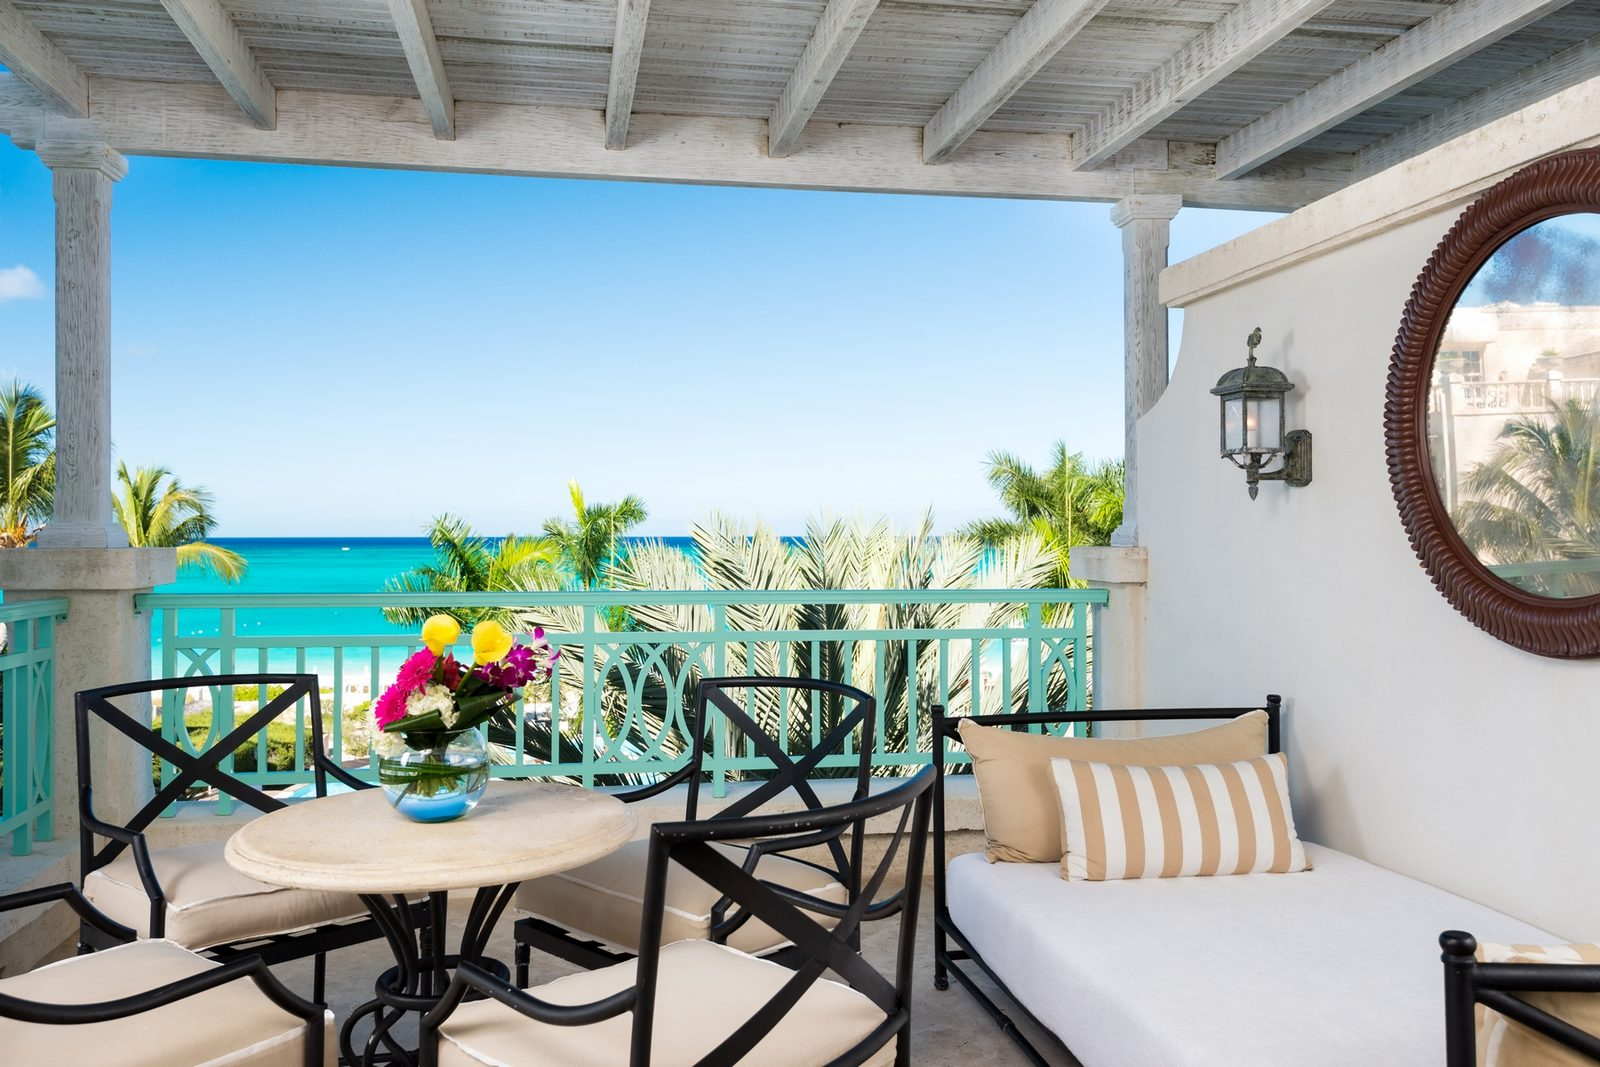 3 Bedroom Apartment For Sale Grace Bay Turks And Caicos 4 7th Heaven Properties